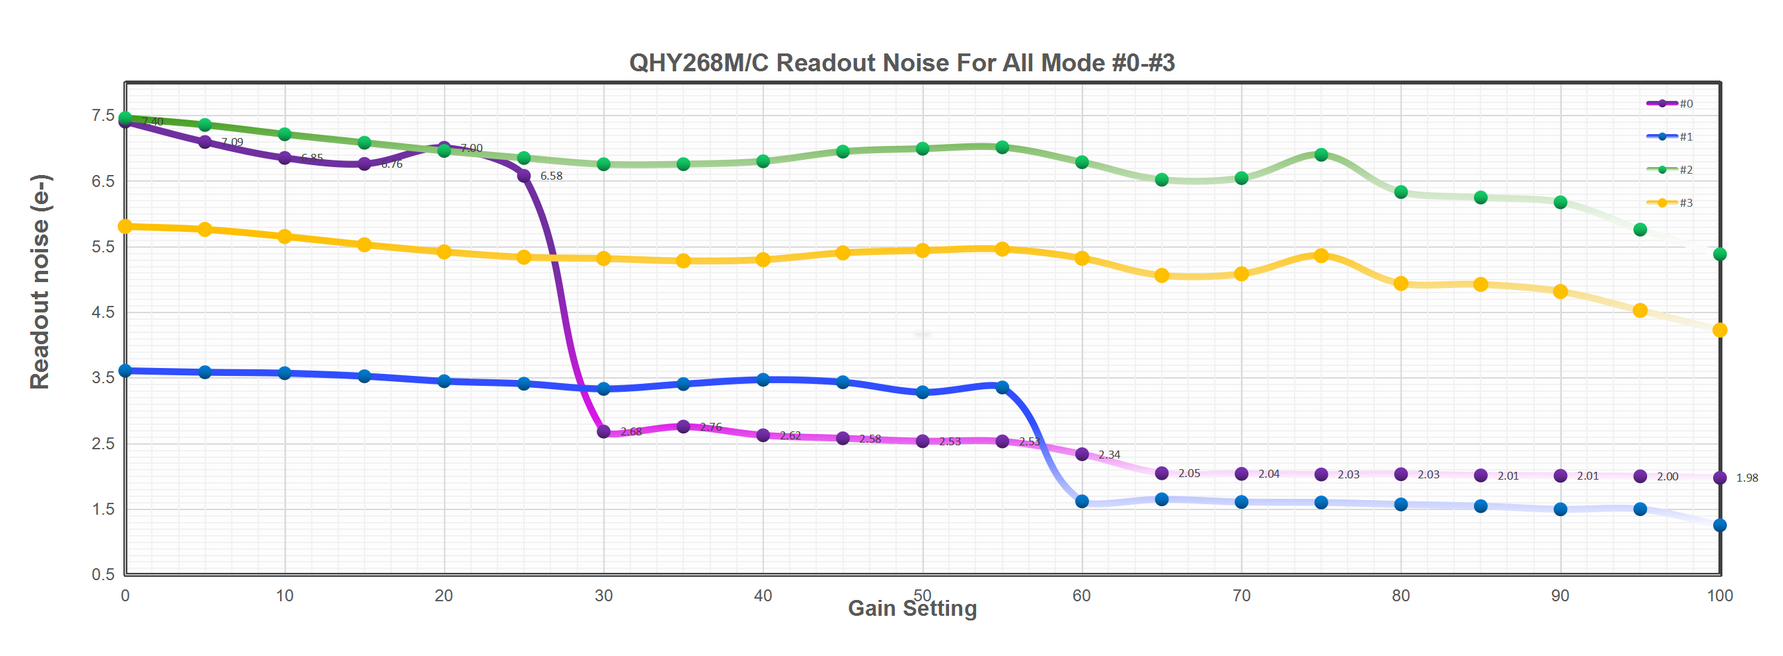 QHY268M/C Readout Noise For All Mode